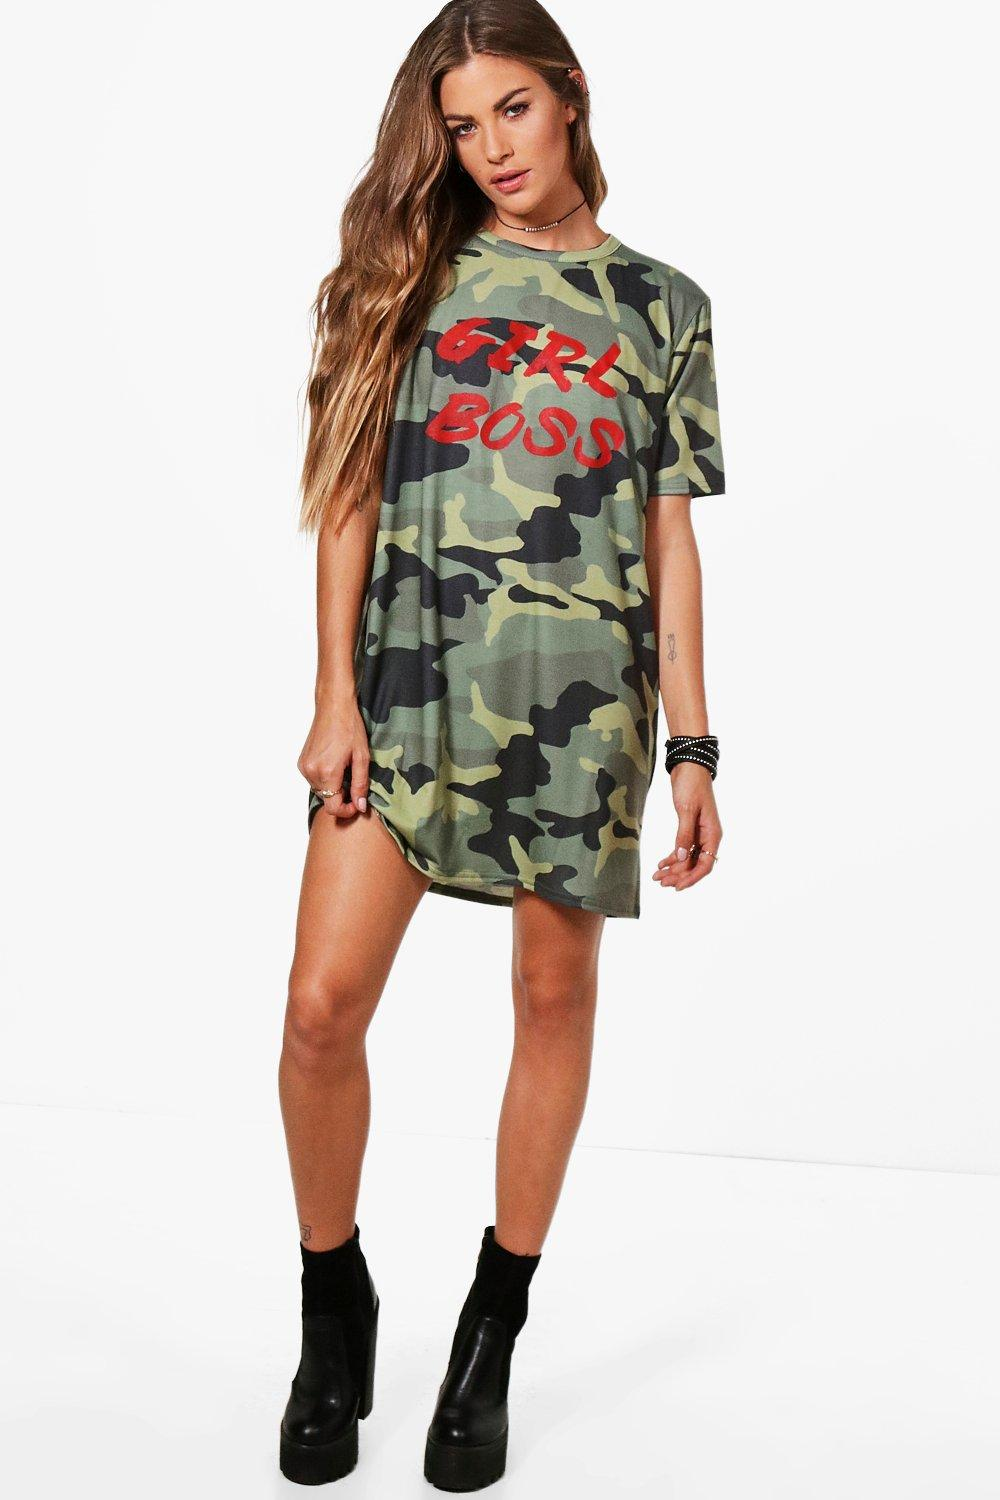 ca7a709731d Womens Multi Katie Girl Boss Camo T-Shirt Dress. Hover to zoom